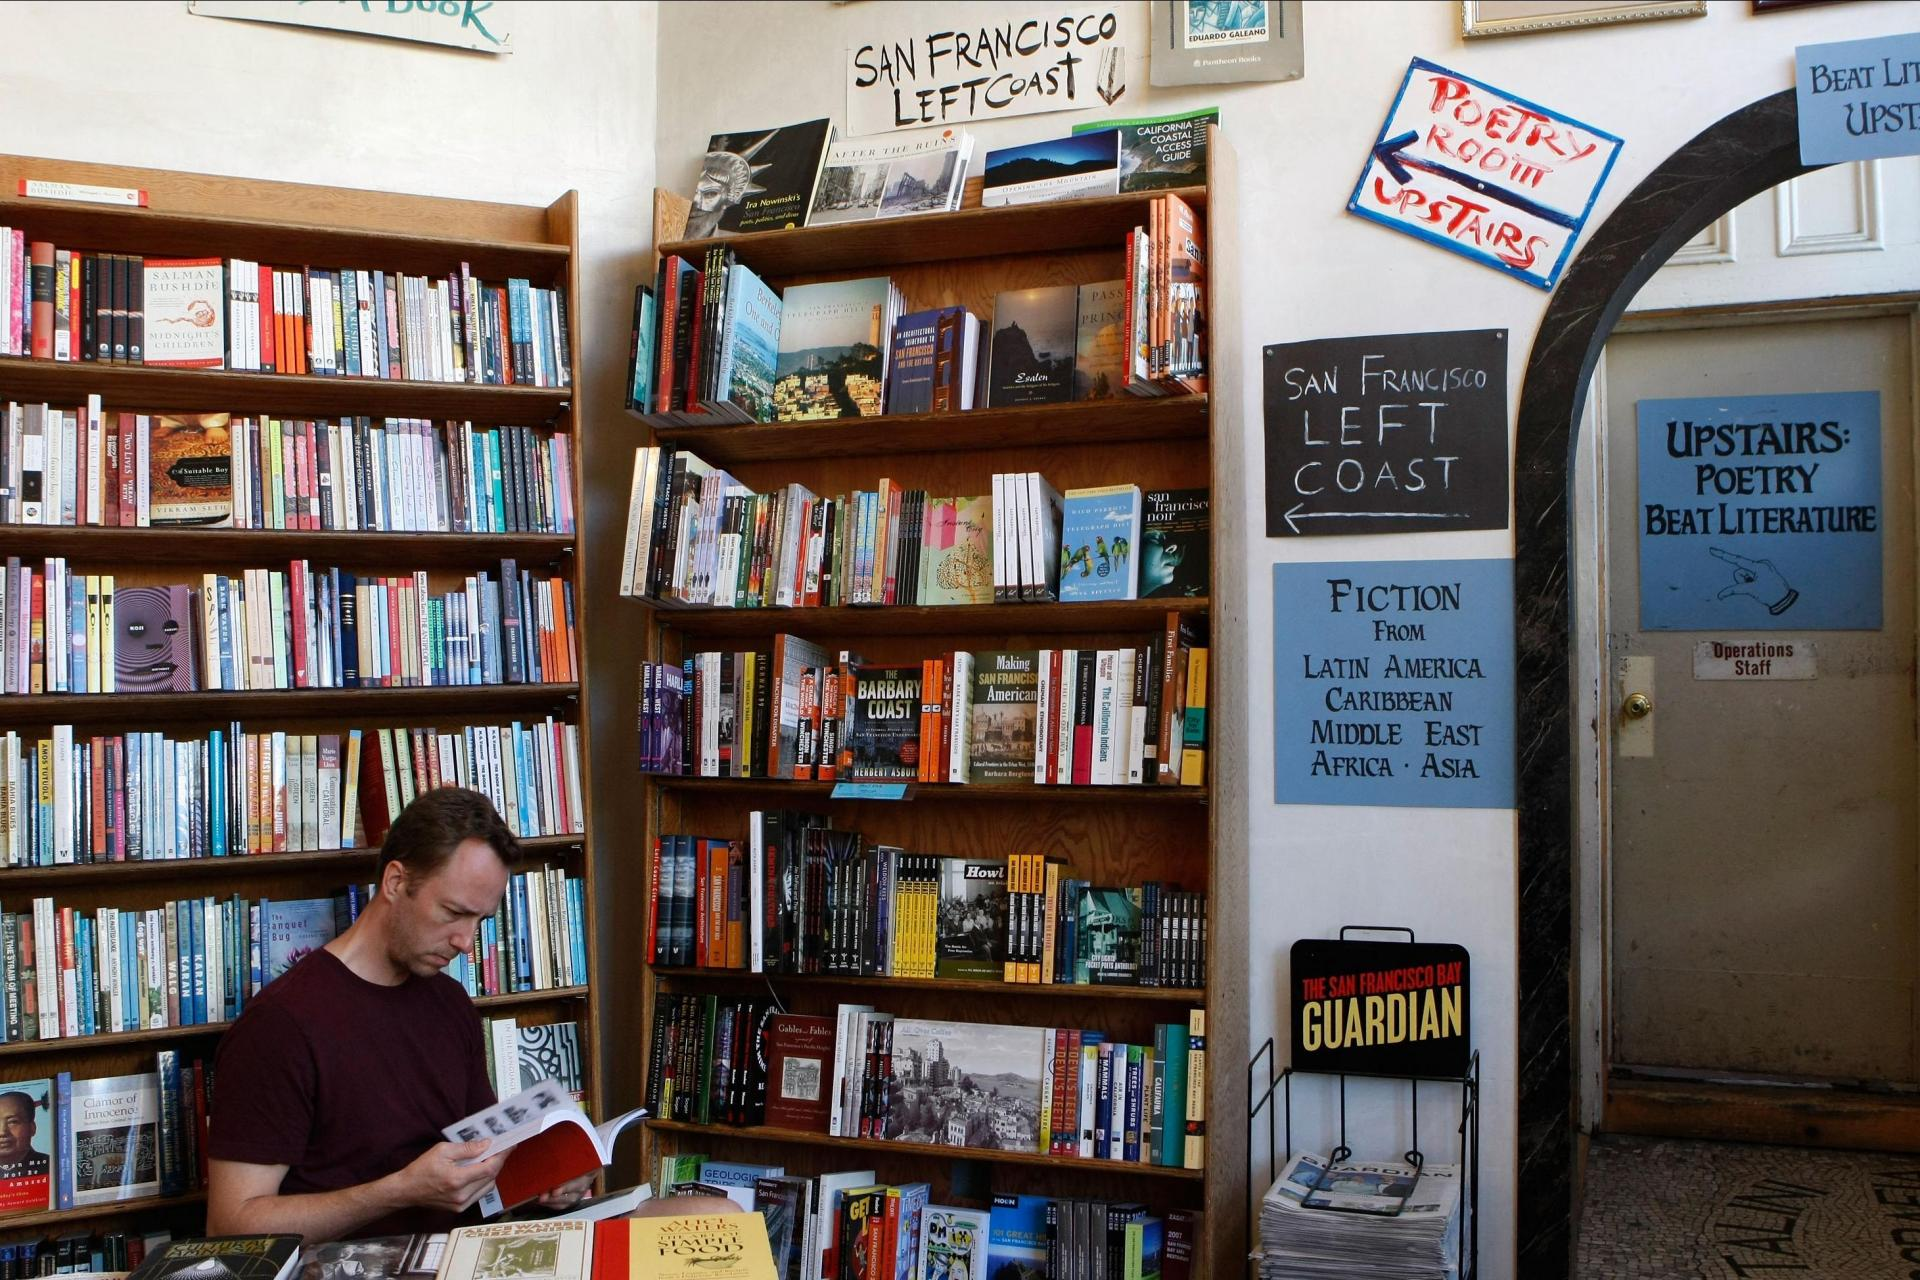 Inside the City Lights bookshop. Photo: Justin Sullivan/Getty Images North America/AFP